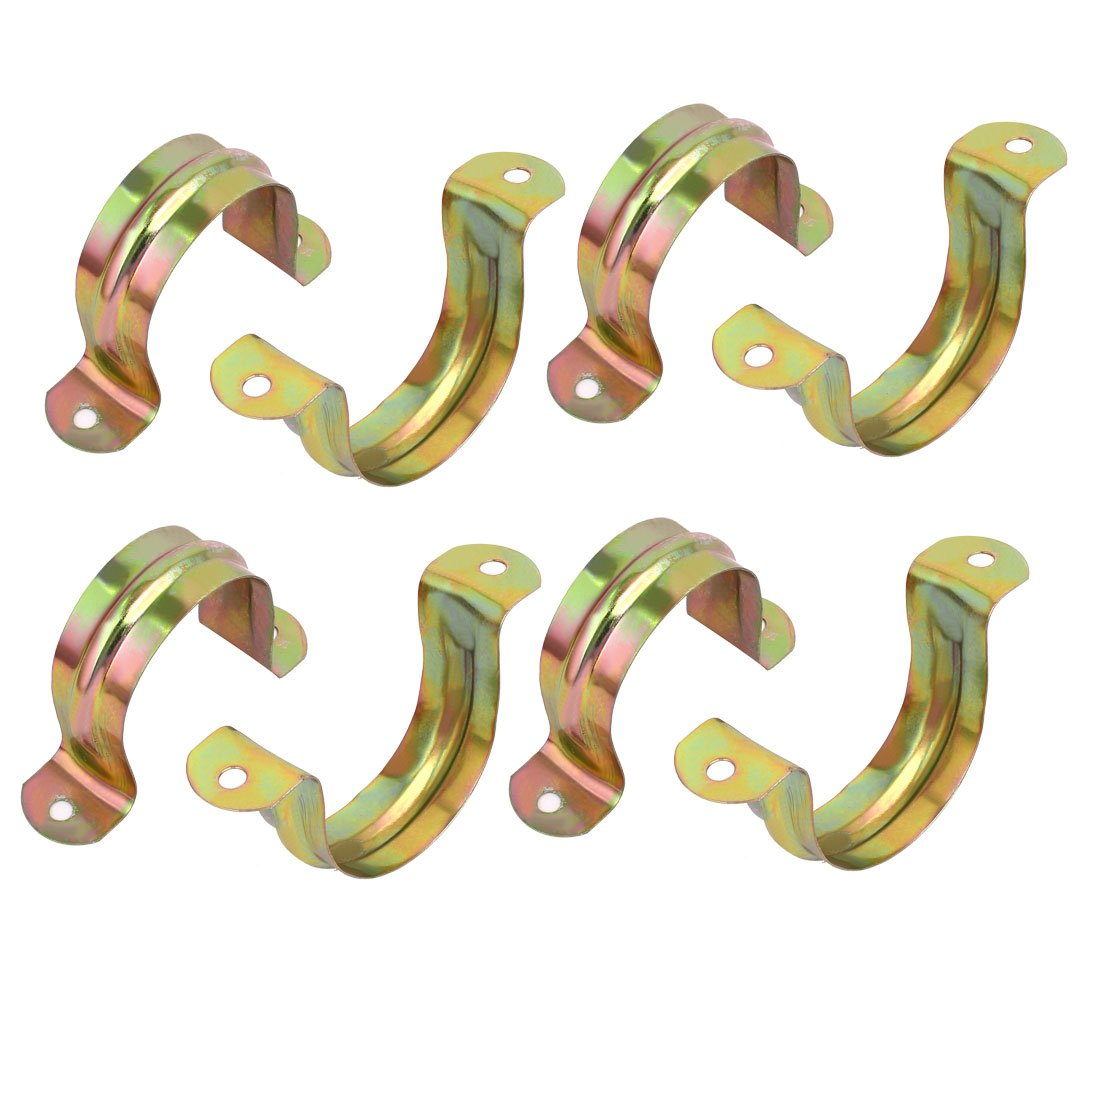 uxcell 60mm Dia Yellow Zinc Plated U Shaped Tube Pipe Strap Clamp Bronze Tone 8pcs